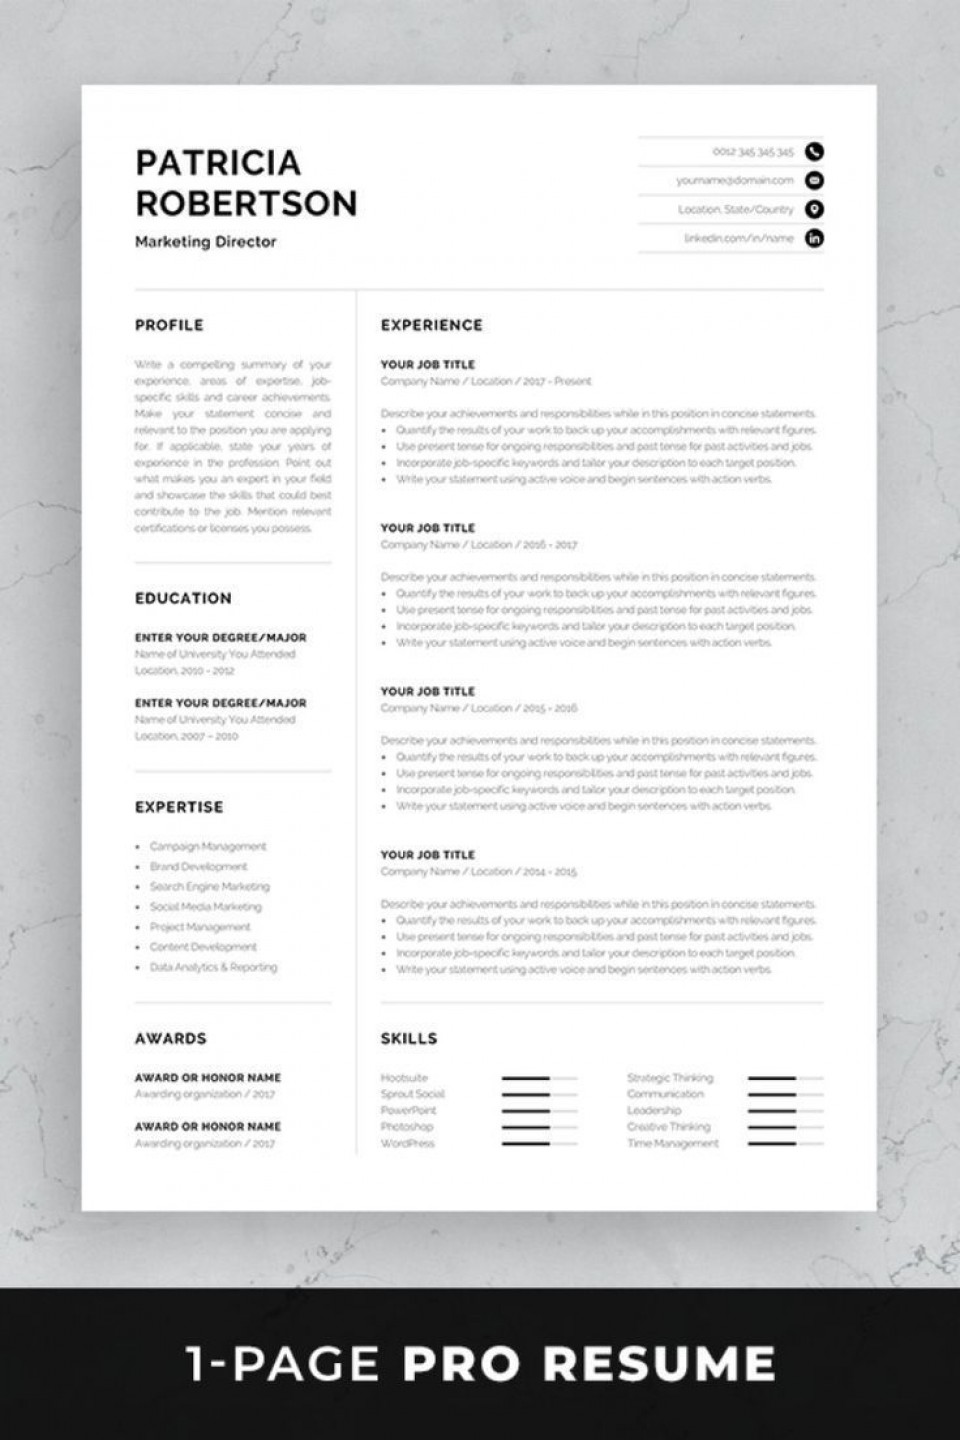 002 Simple 1 Page Resume Template Concept  One Microsoft Word Free For Fresher960